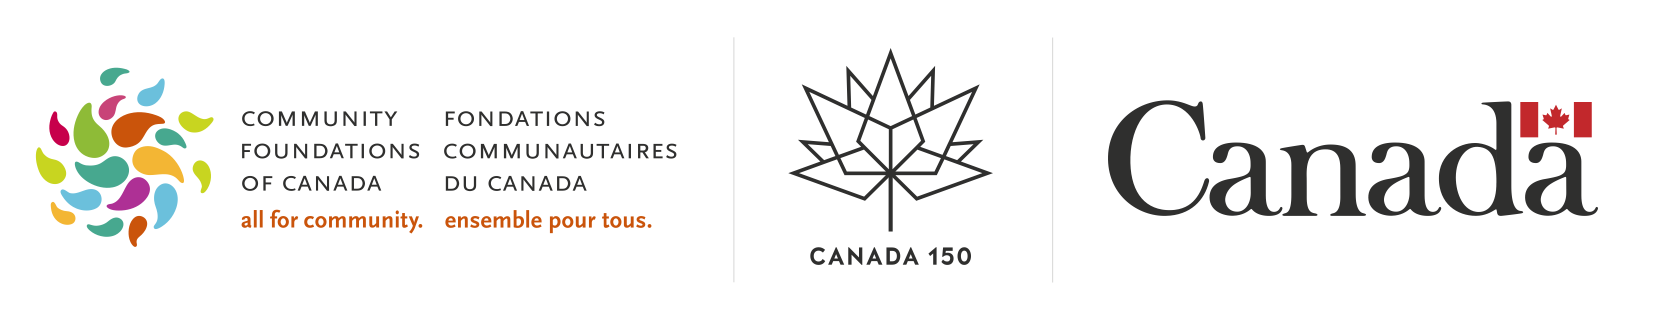 CFC150_Fund_wordmark_updated